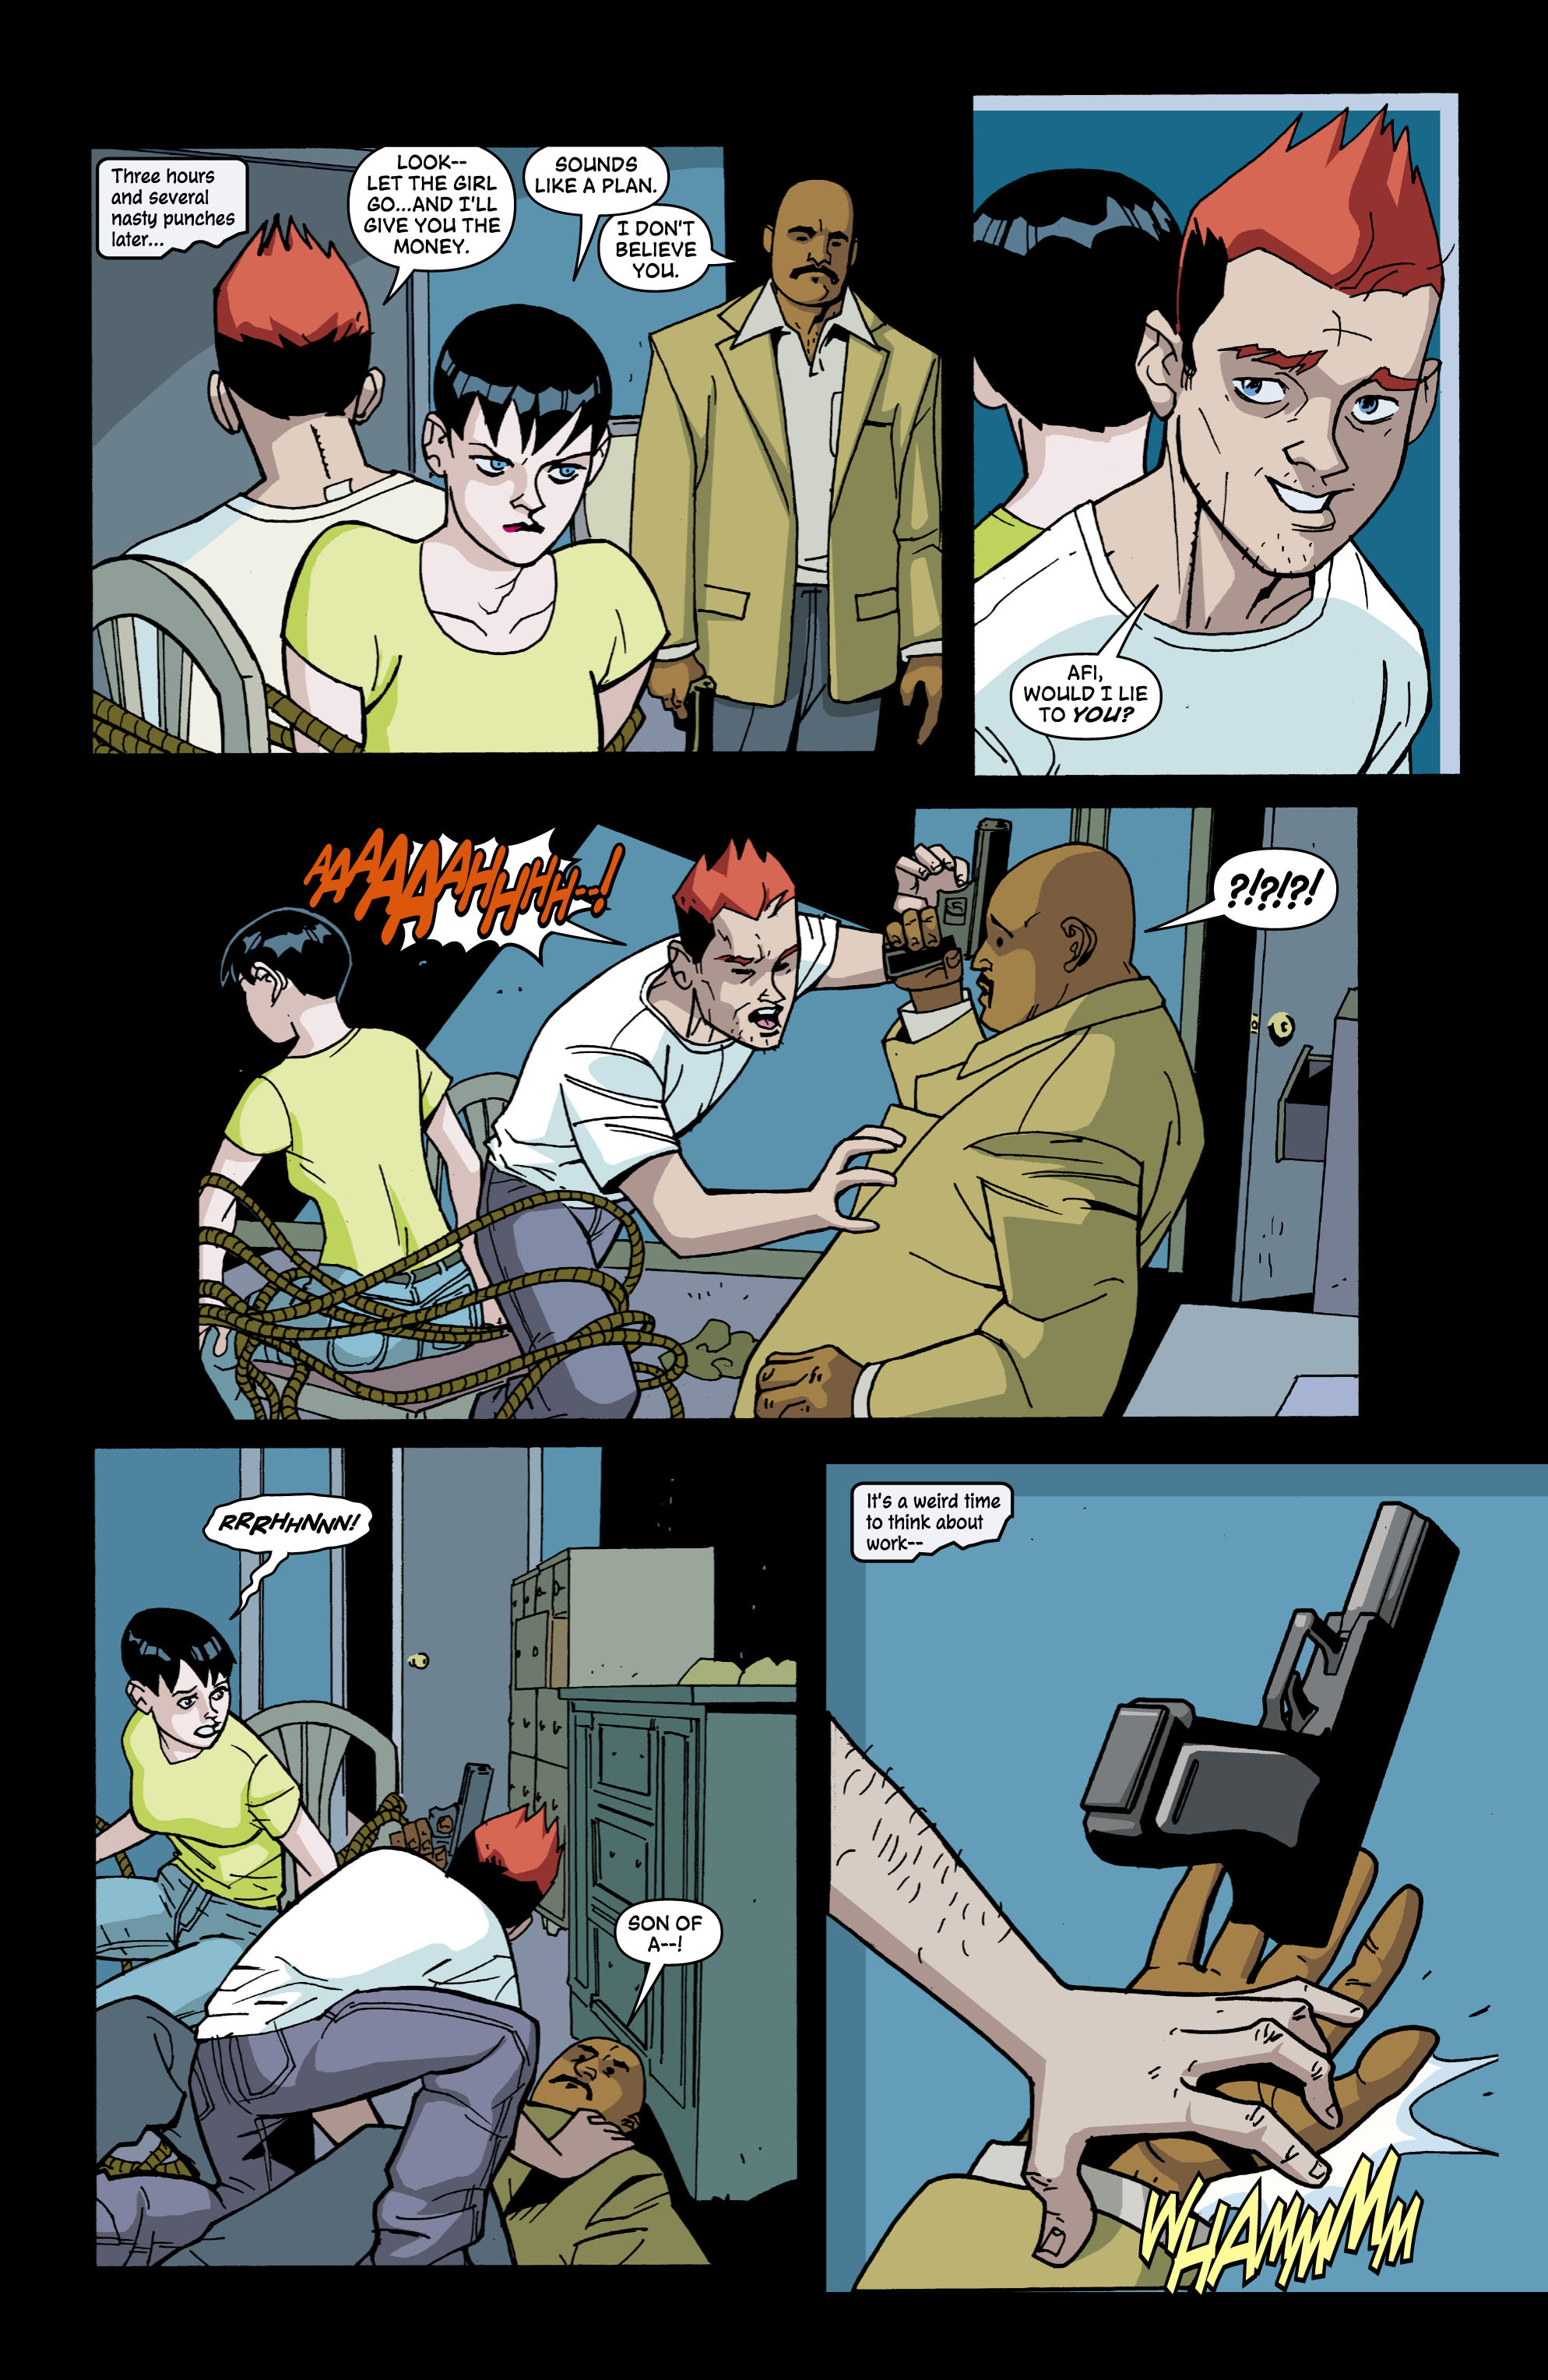 Read online Red Herring comic -  Issue #3 - 21